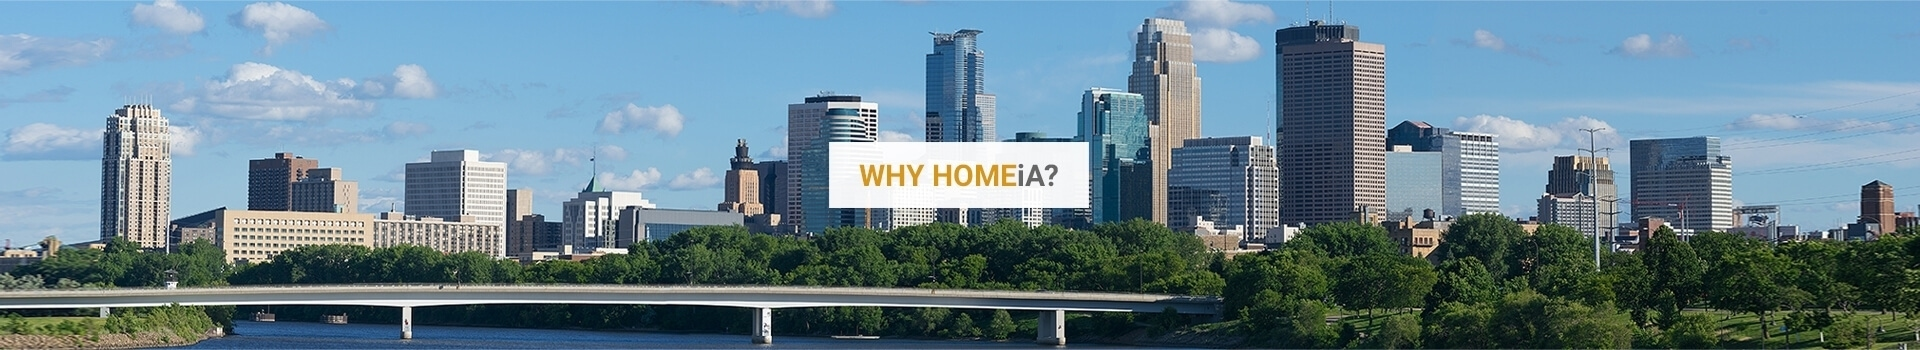 Why HOMEiA?